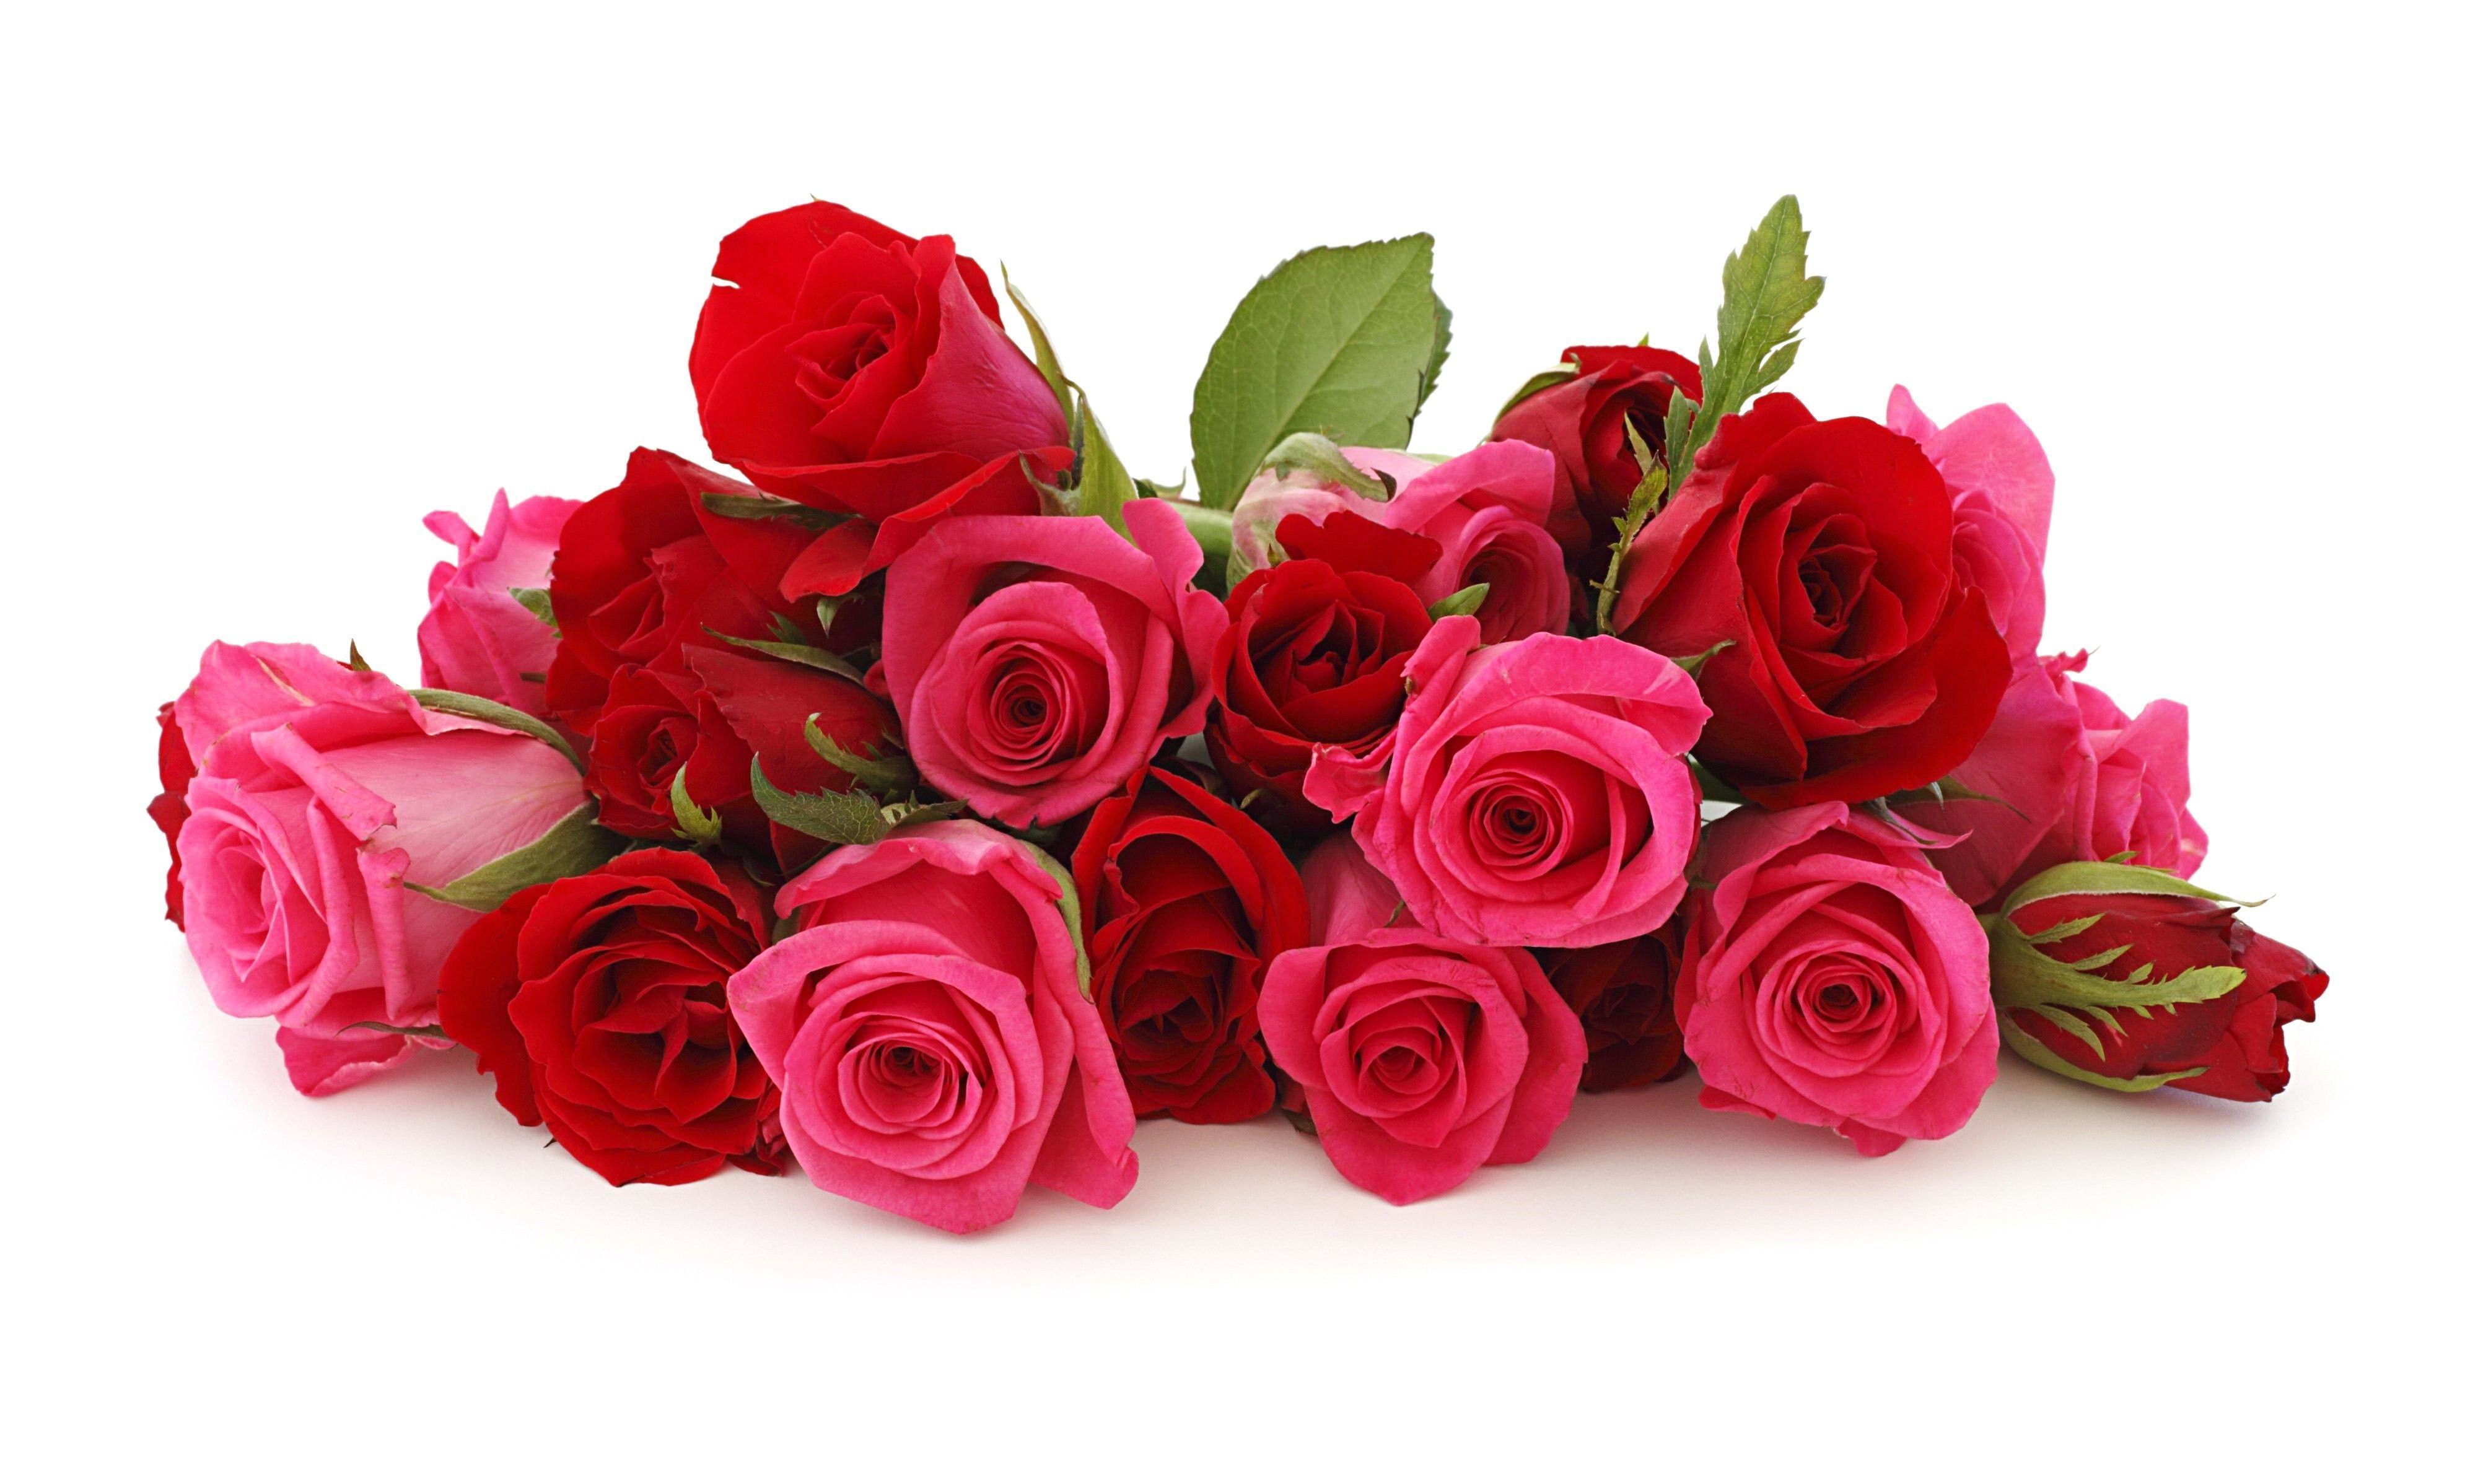 Bouquet Of Roses PNG HD - 142840